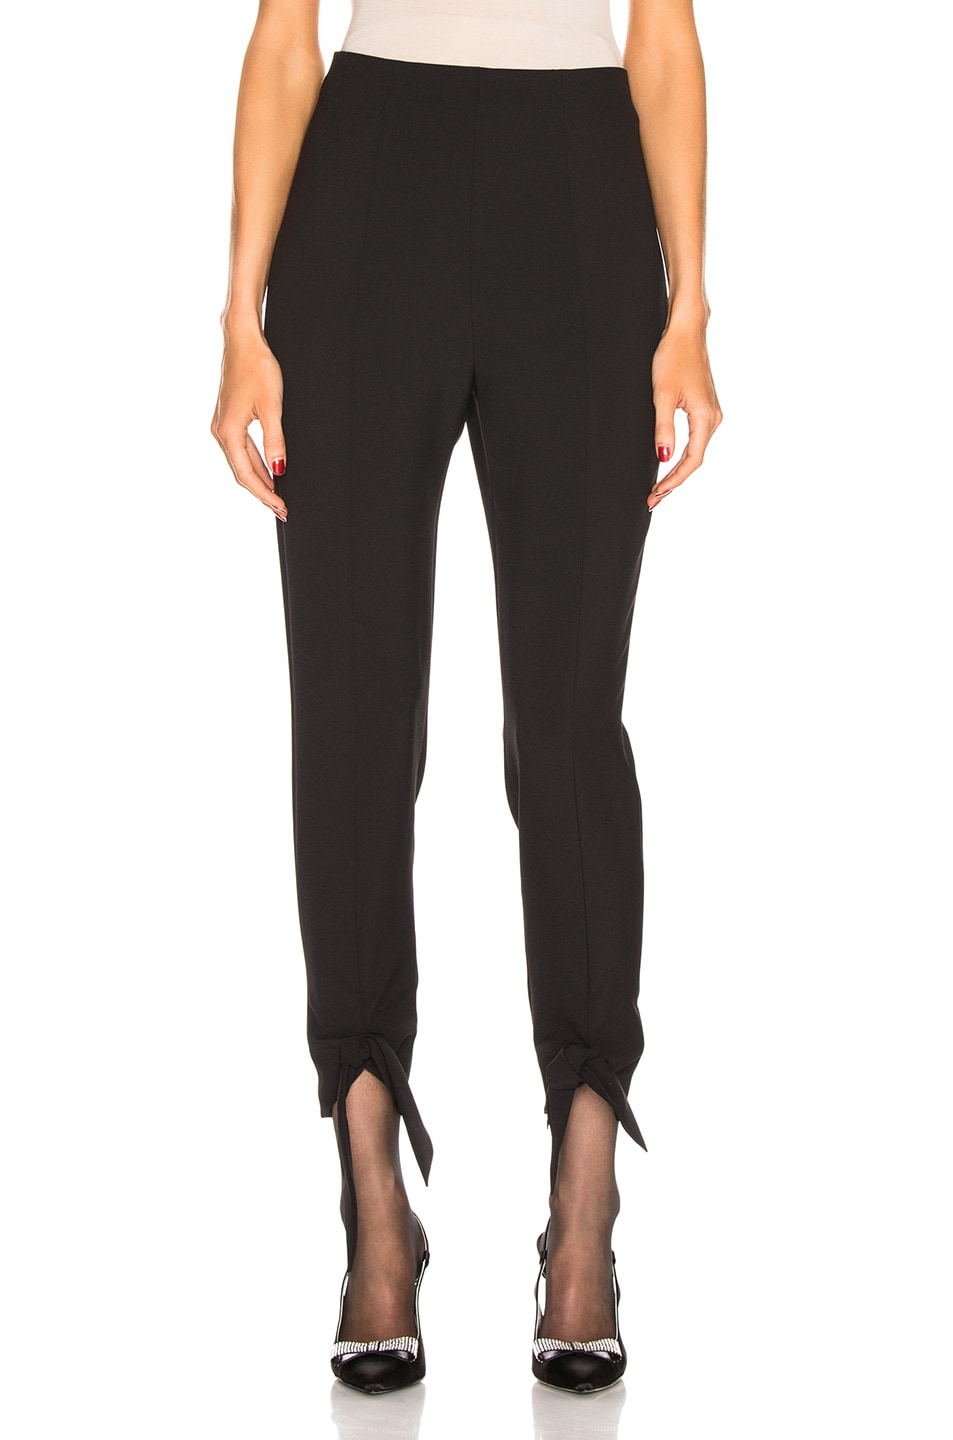 Carmen March CARMEN MARCH TIE PANT IN BLACK.